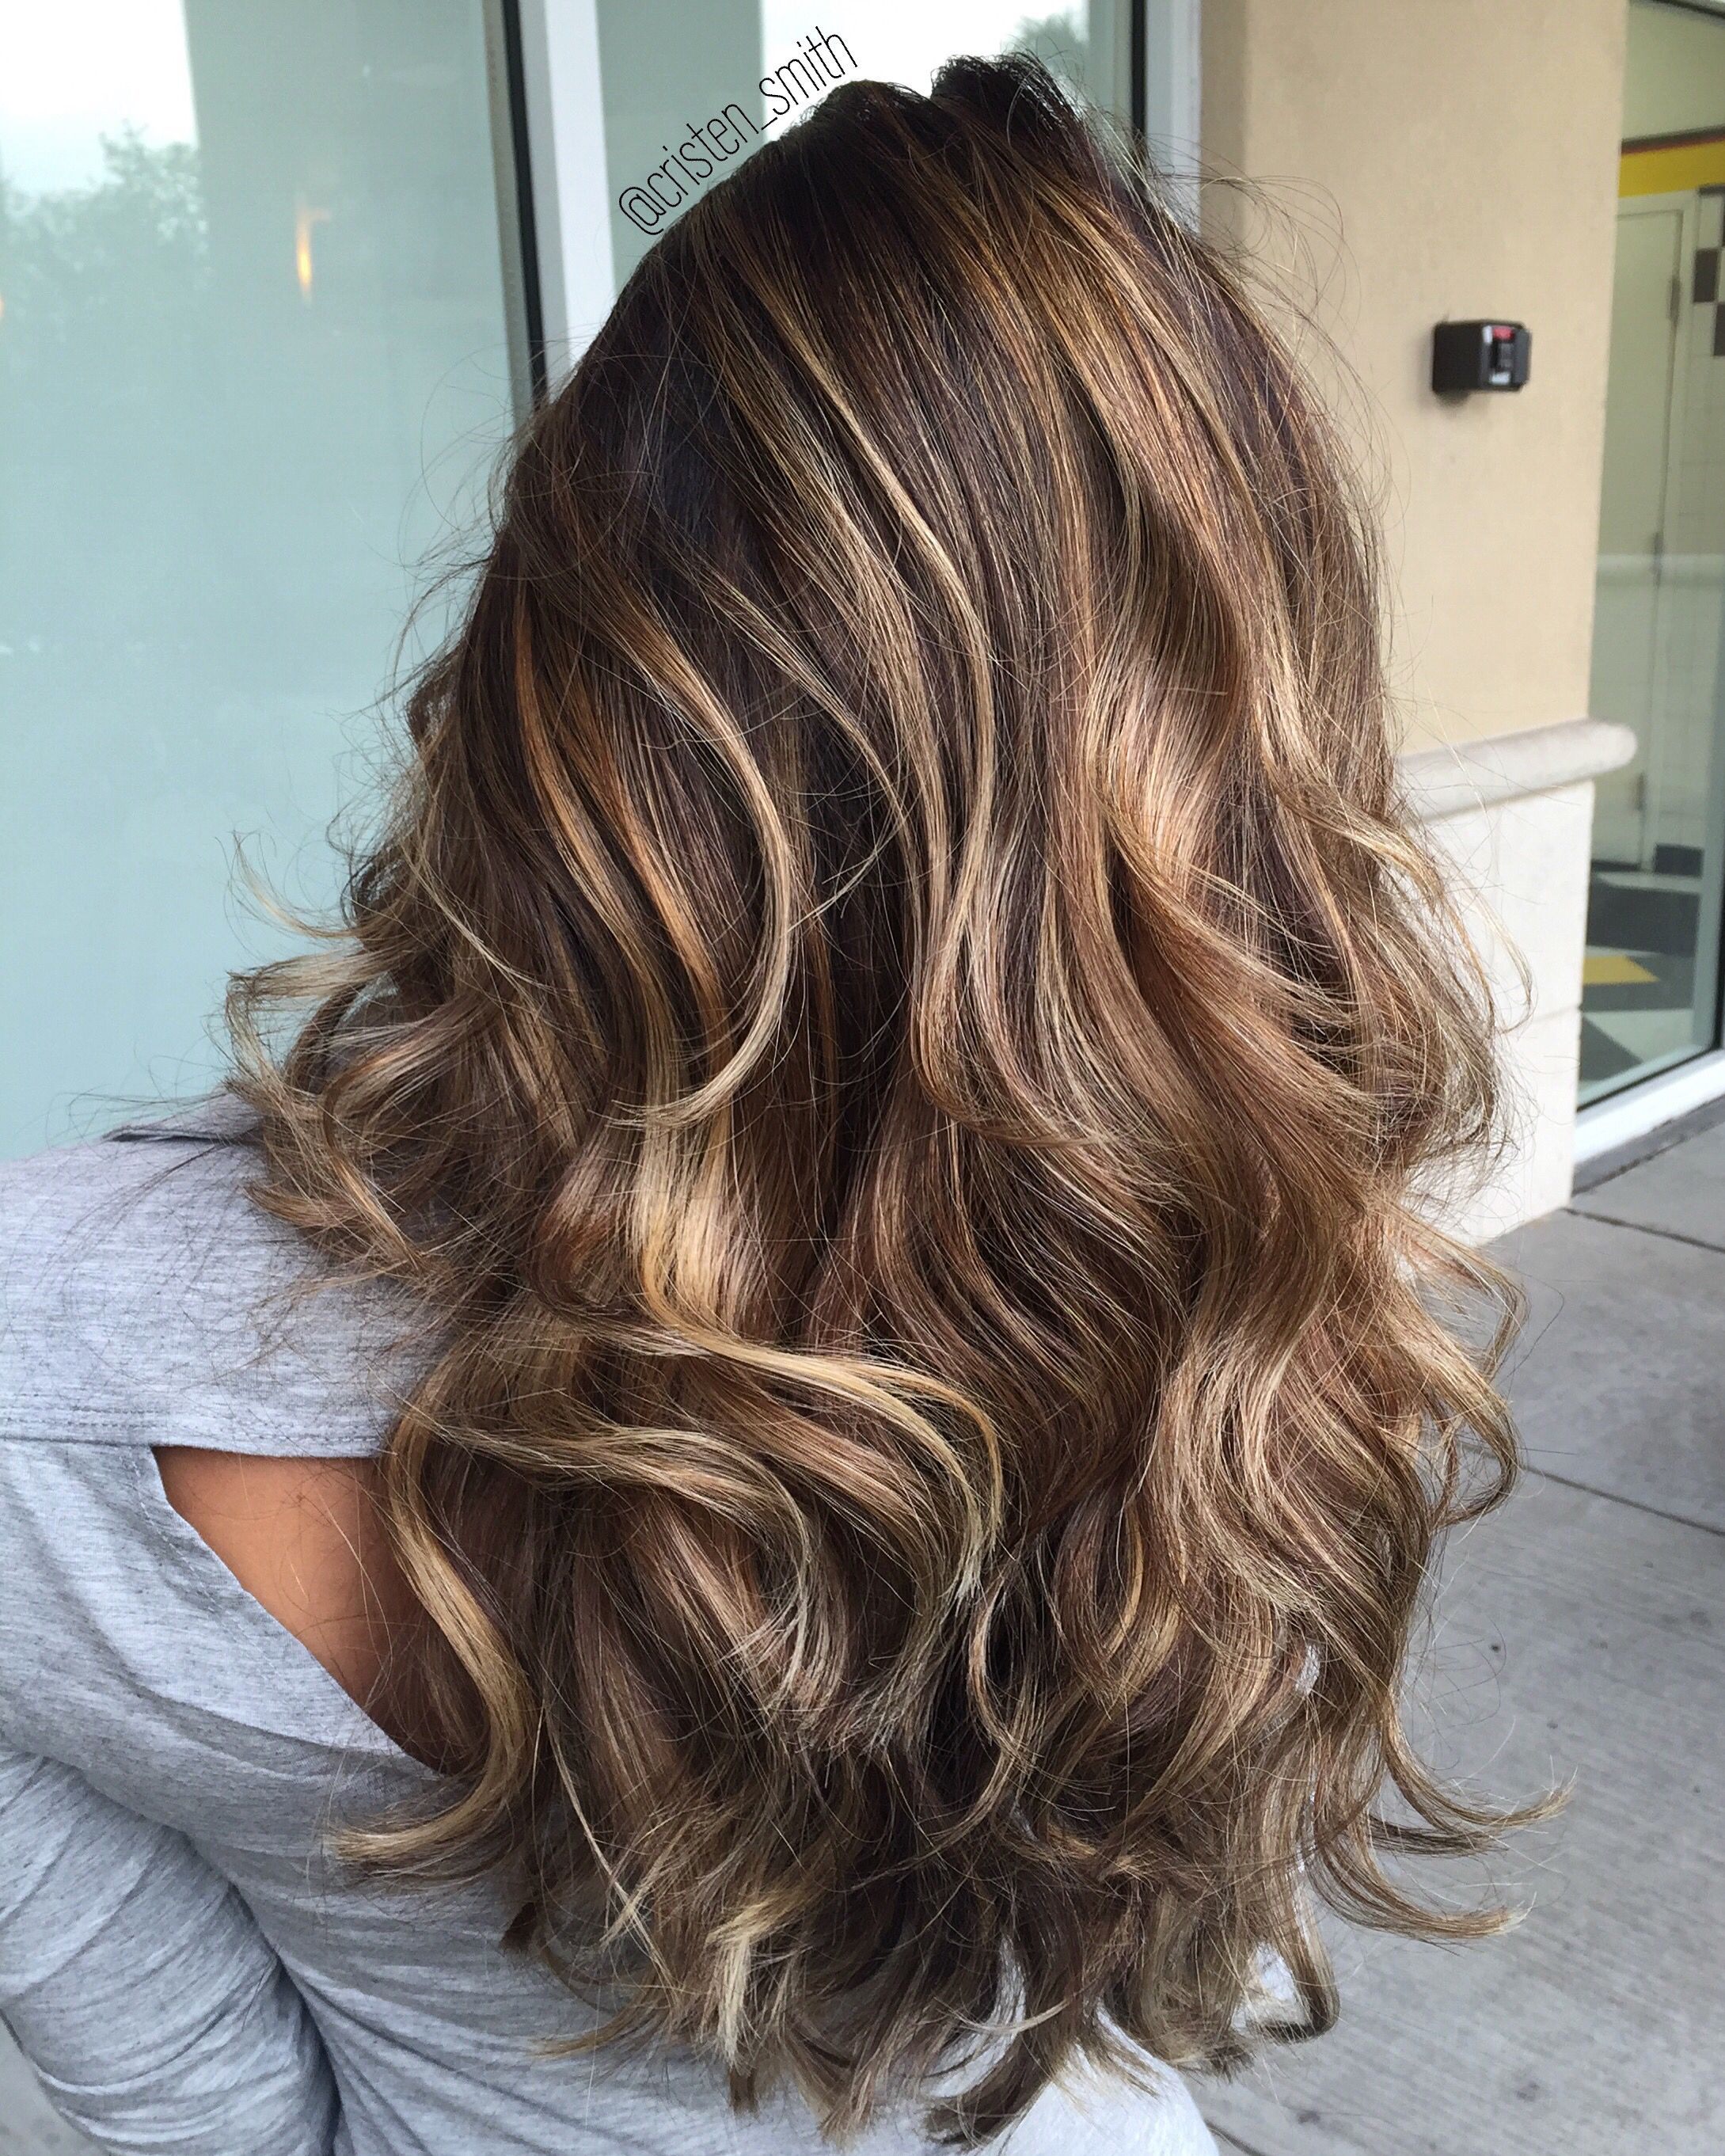 25 Delightfully Earthy Fall Hair Color Ideas | my style | Hair, Hair ...